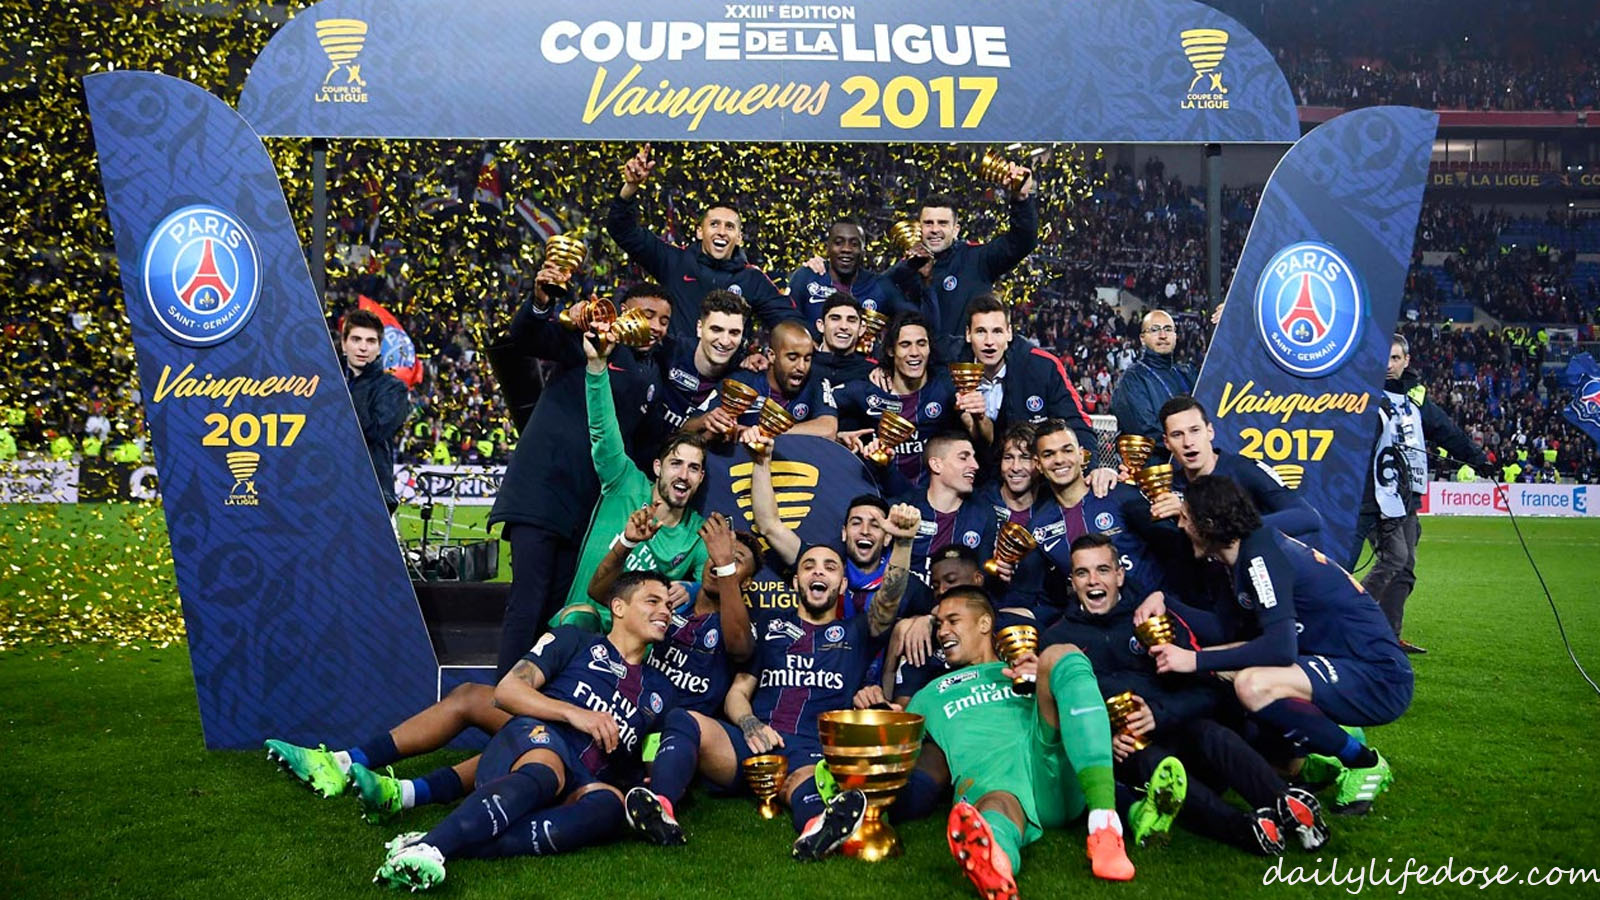 PSG THRASHES MONACO TO WIN FRENCH LEAGUE CUP